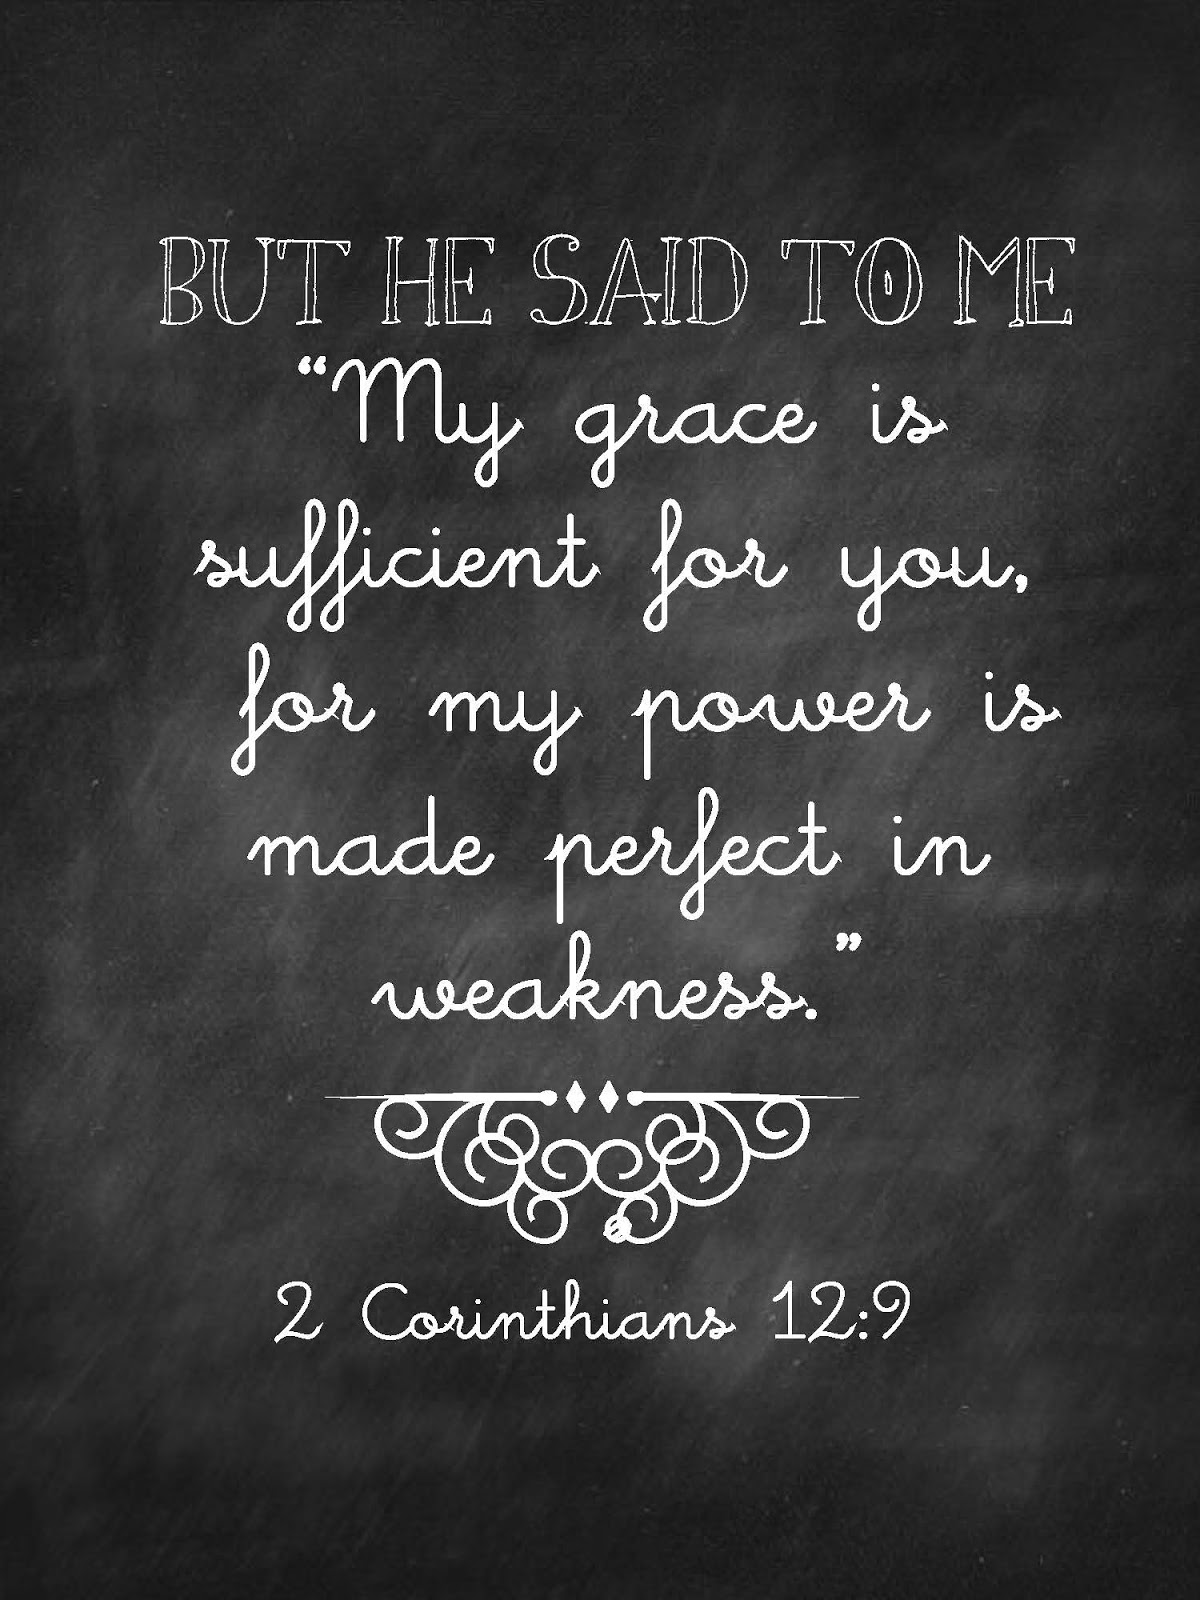 Quotes On Strength Bible: Sweet Blessings: Chalk Verses~ Set #1